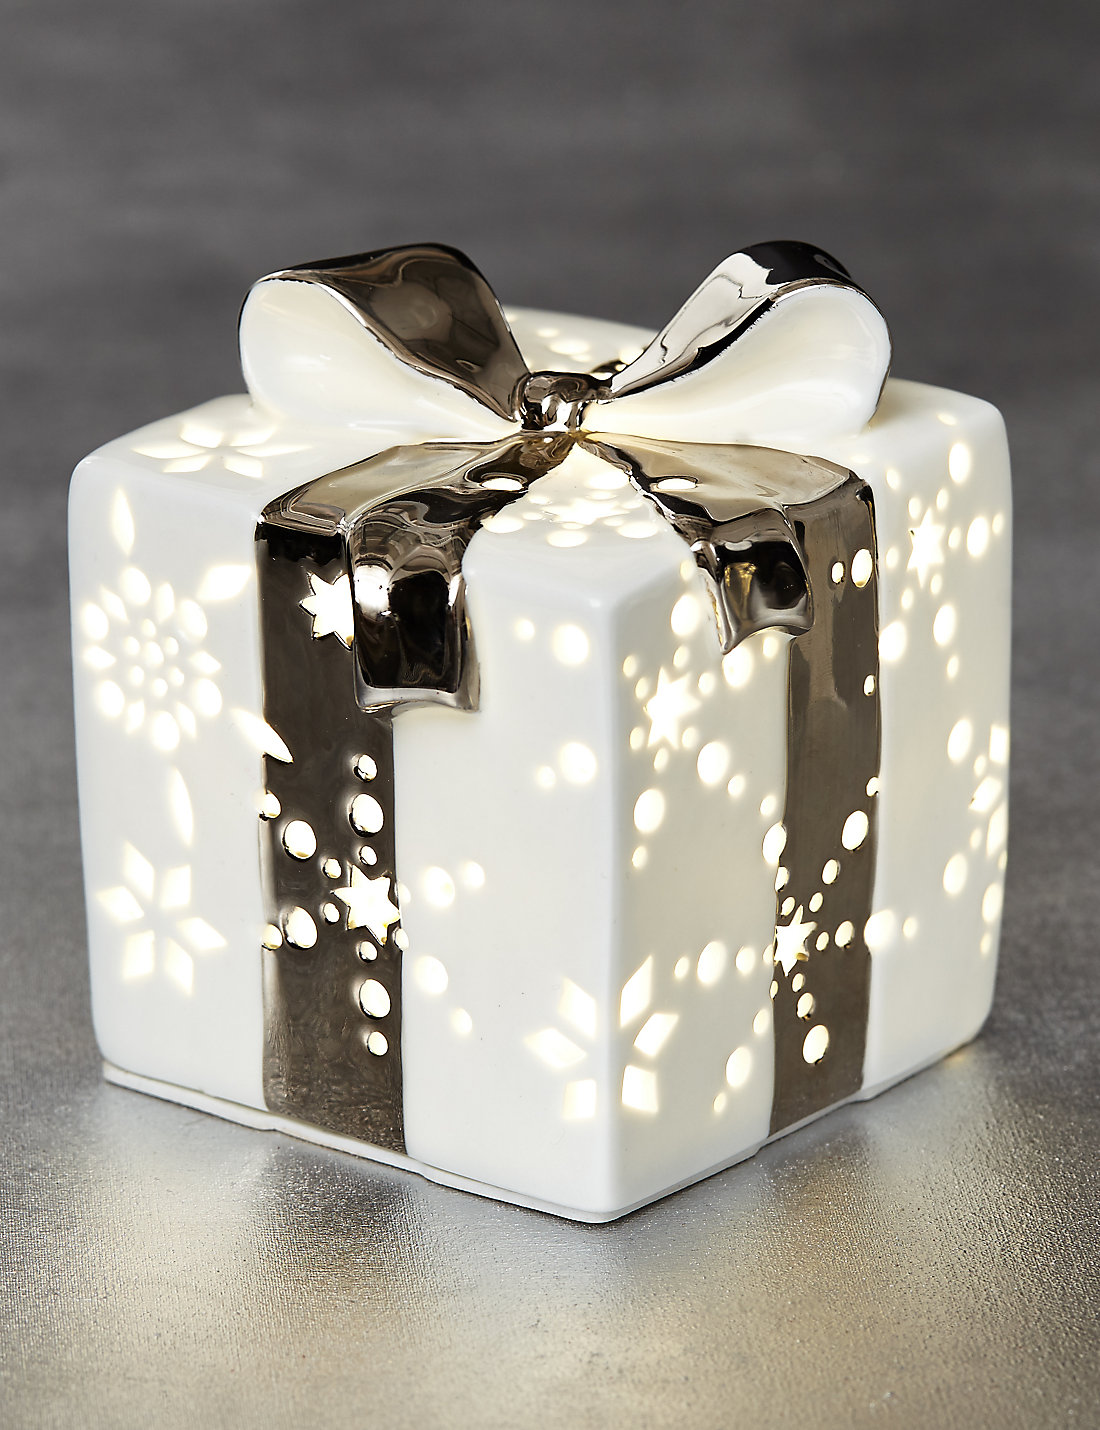 Lit white ceramic gift box ms lit white ceramic gift box negle Image collections